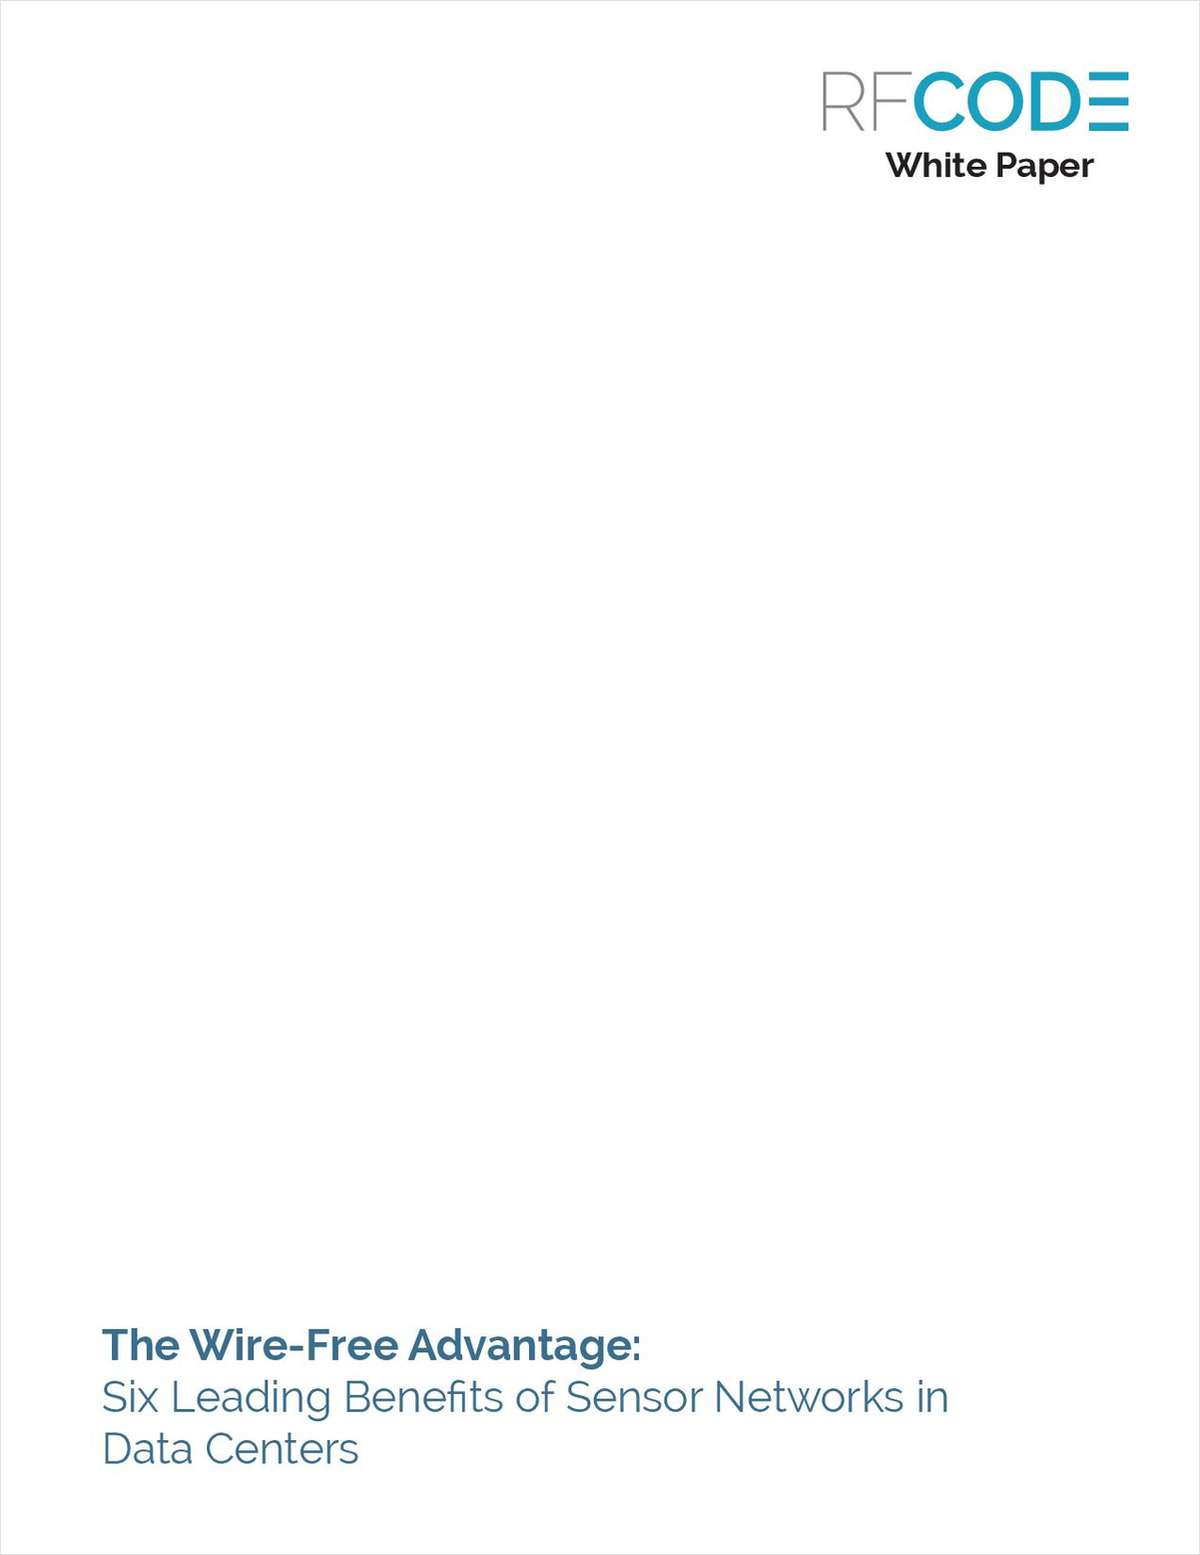 The Wire-Free Advantage: Six Leading Benefits of Sensor Networks in Data Centers